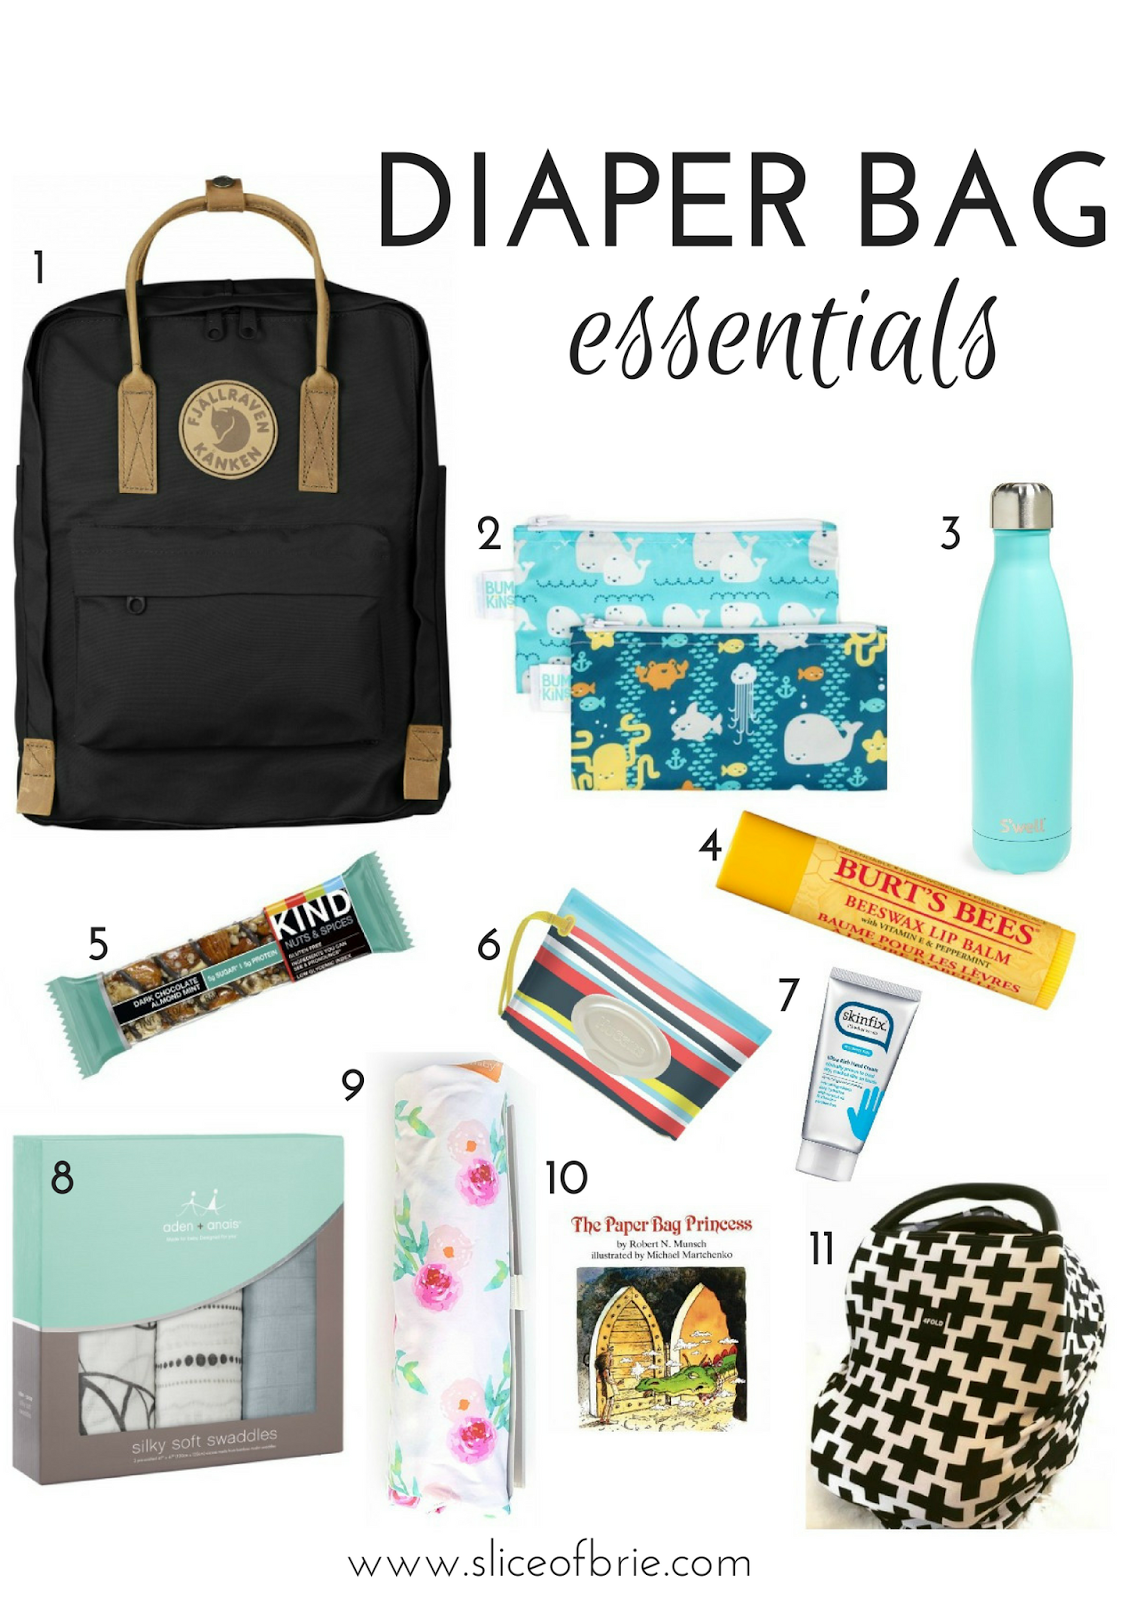 packing a streamlined diaper bag - the must haves